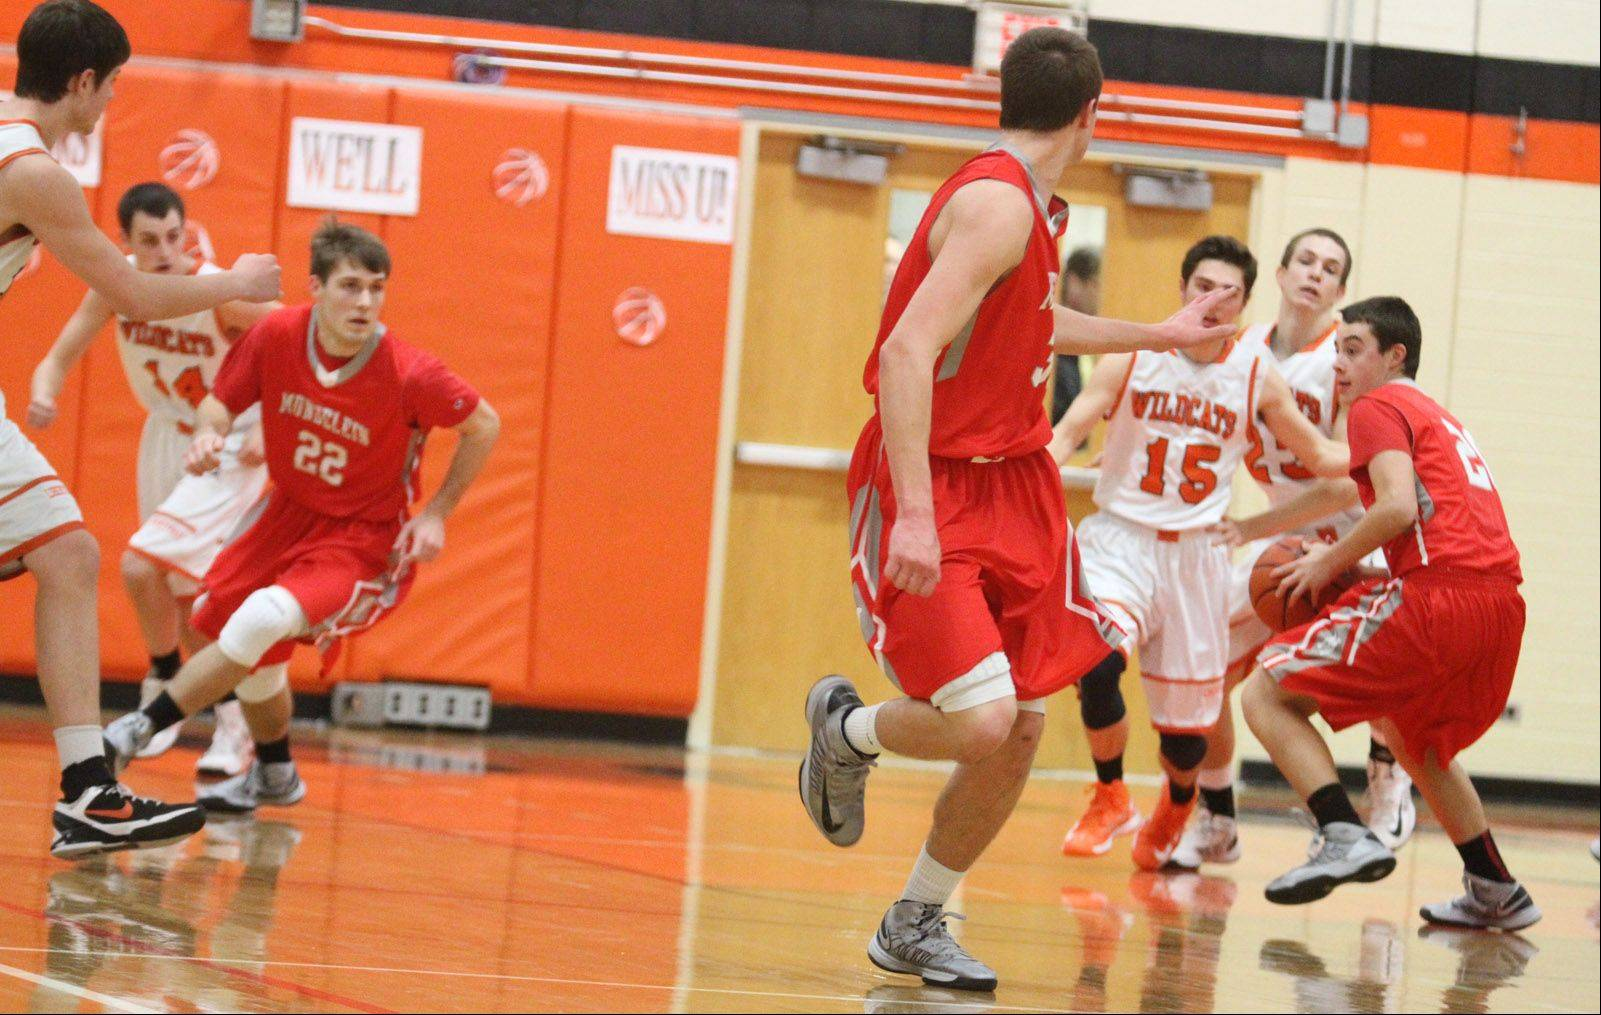 Images from the Mundelein at Libertyville boys basketball game on Friday, Feb. 8.